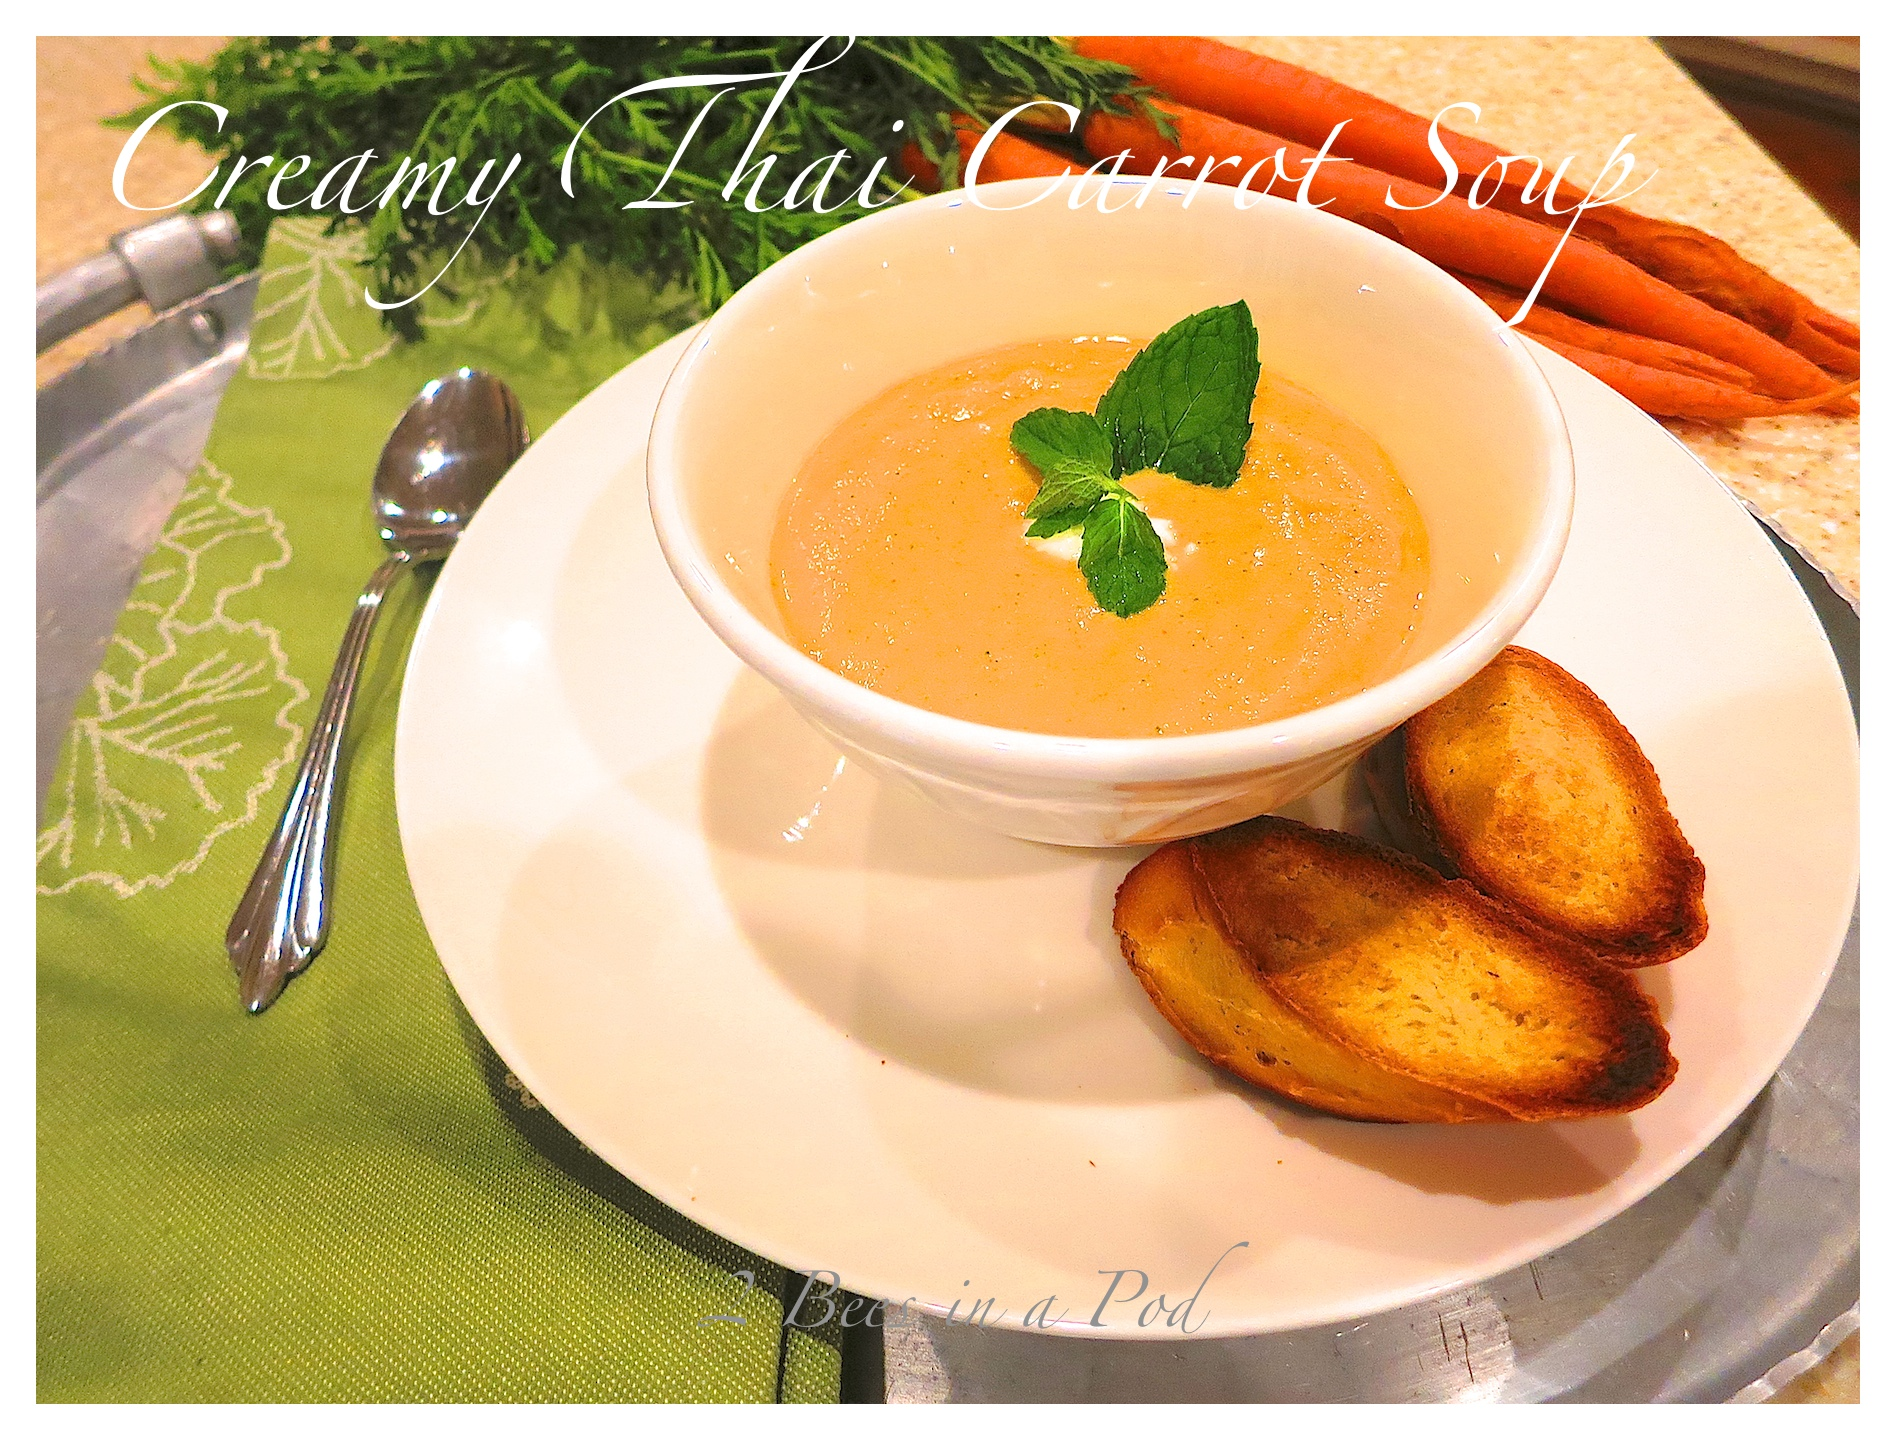 Creamy Thai Carrot Soup...packed with flavor and easy to make.